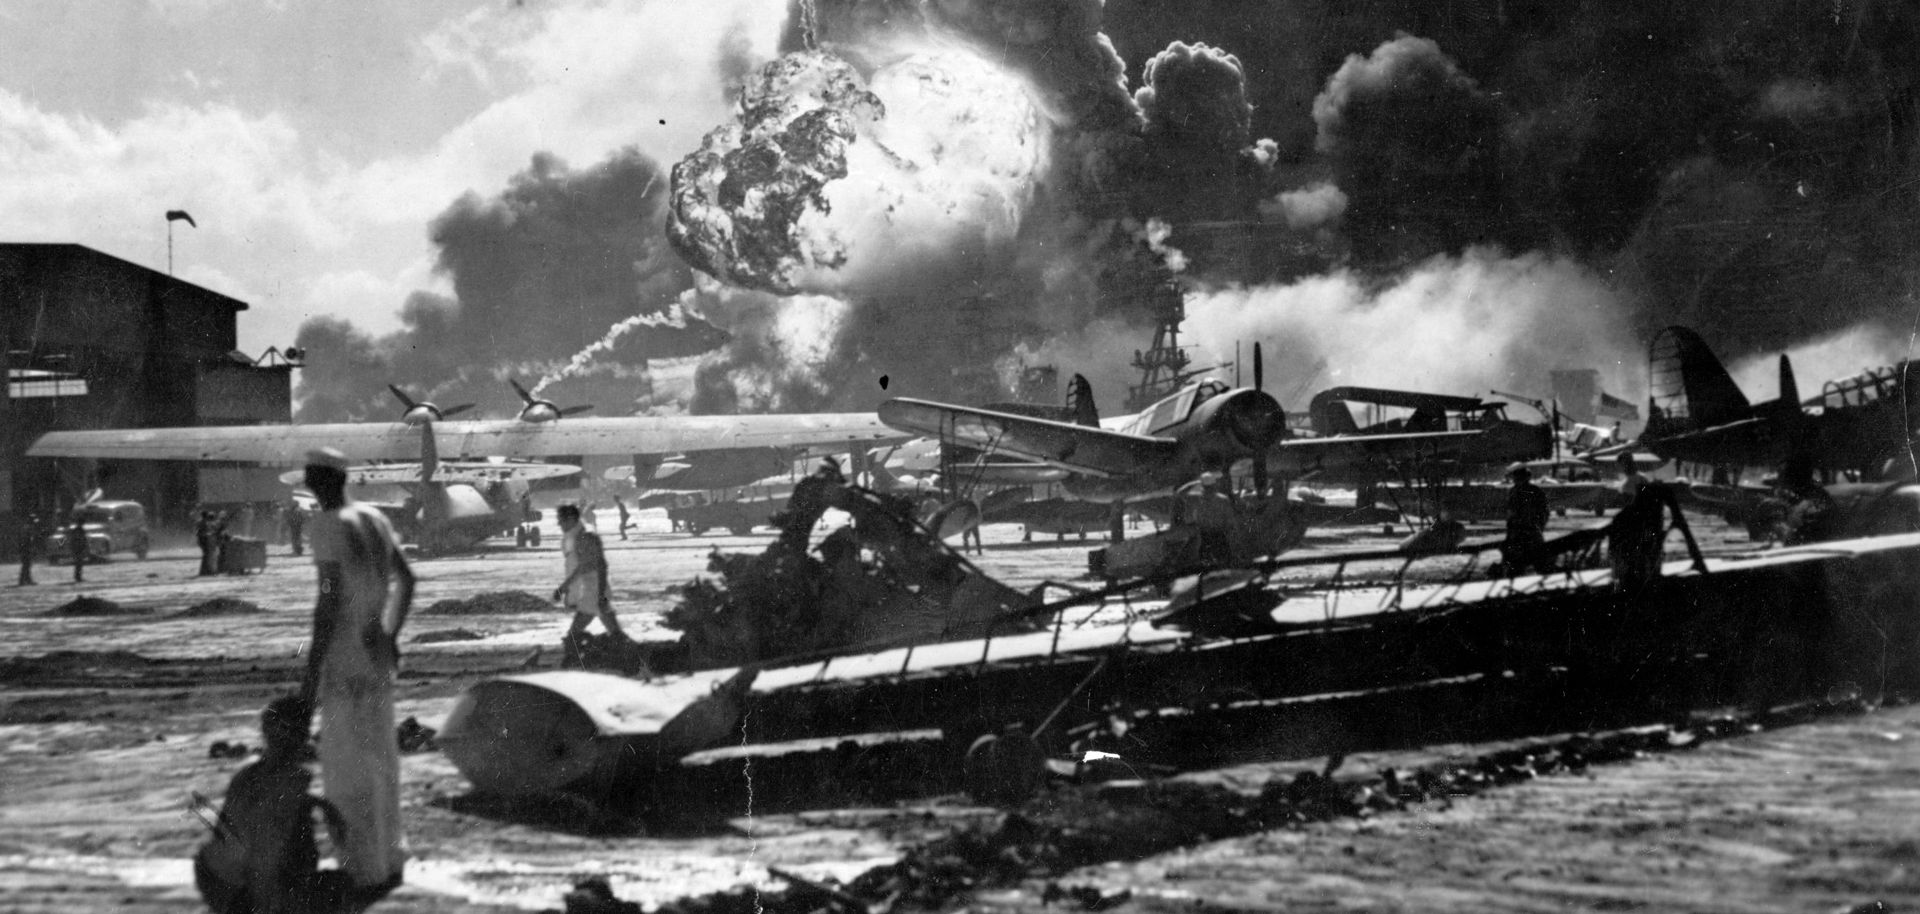 Sailors stand amid wreckage watching as the USS Shaw explodes on Dec. 7, 1941, at the Naval Air Station, Ford Island, Pearl Harbor.